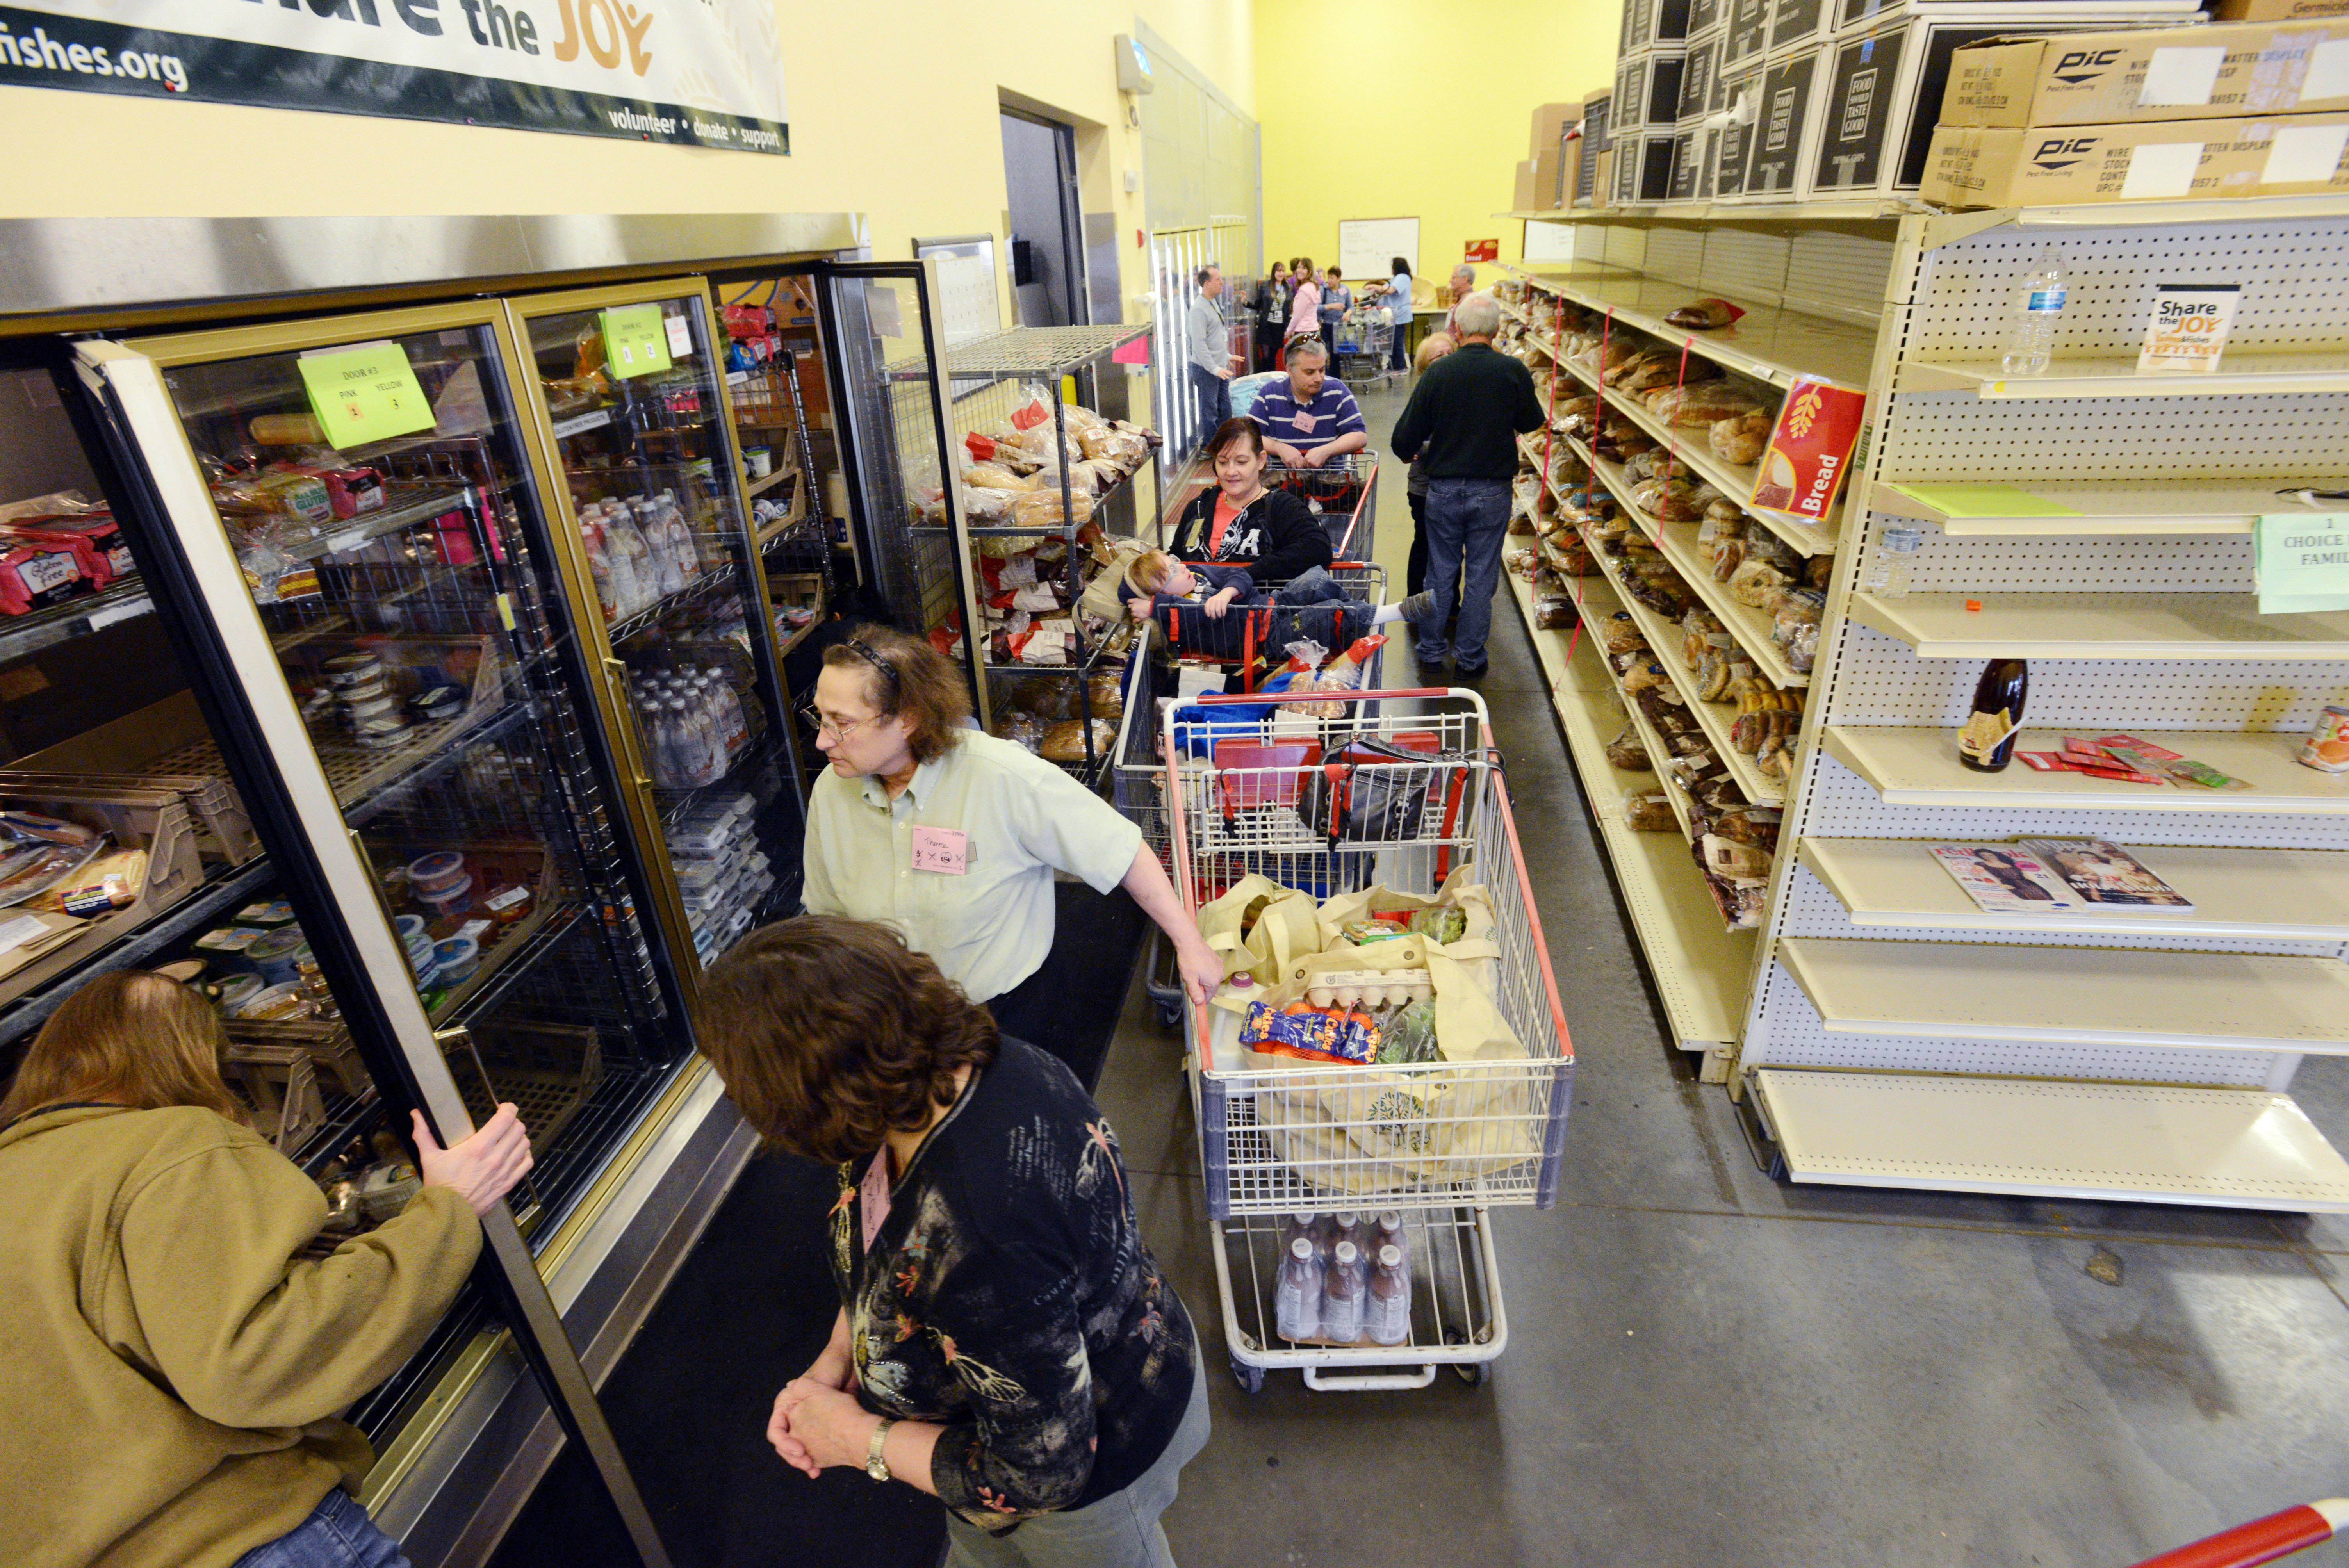 Naperville's Loaves & Fishes switching to 'open market' layout to promote healthy foods